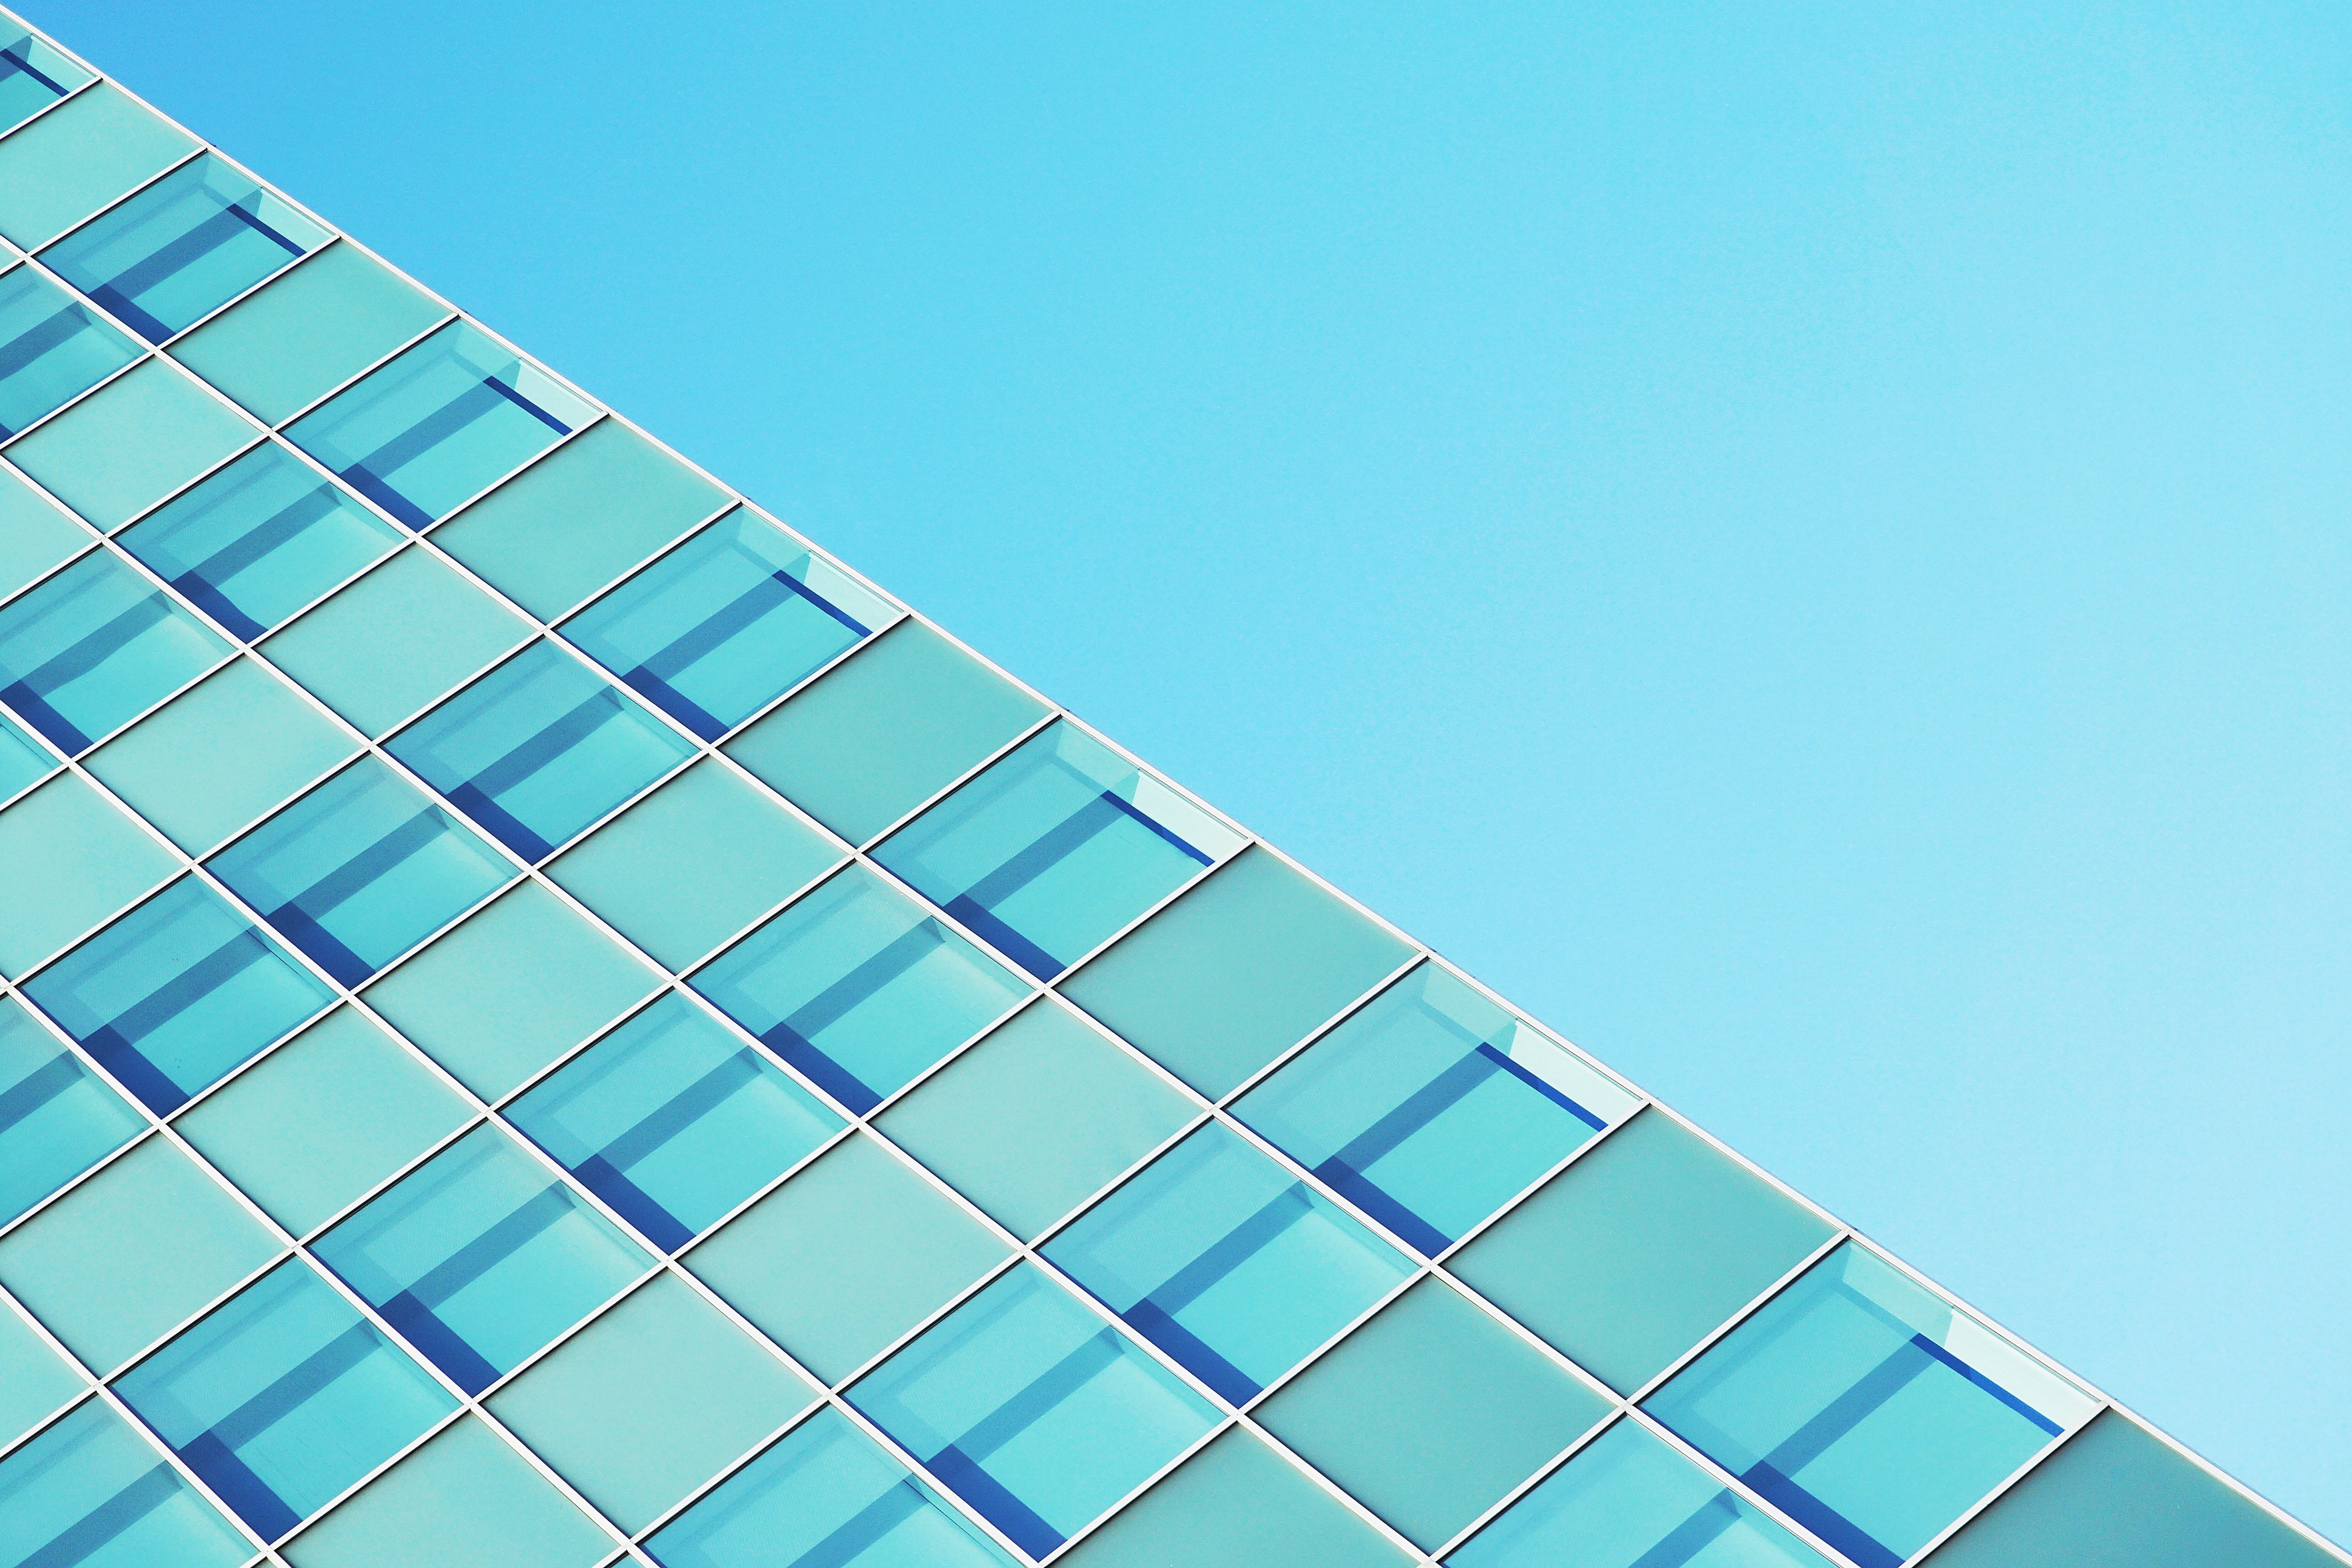 The edge of a glass-covered facade against a blue sky